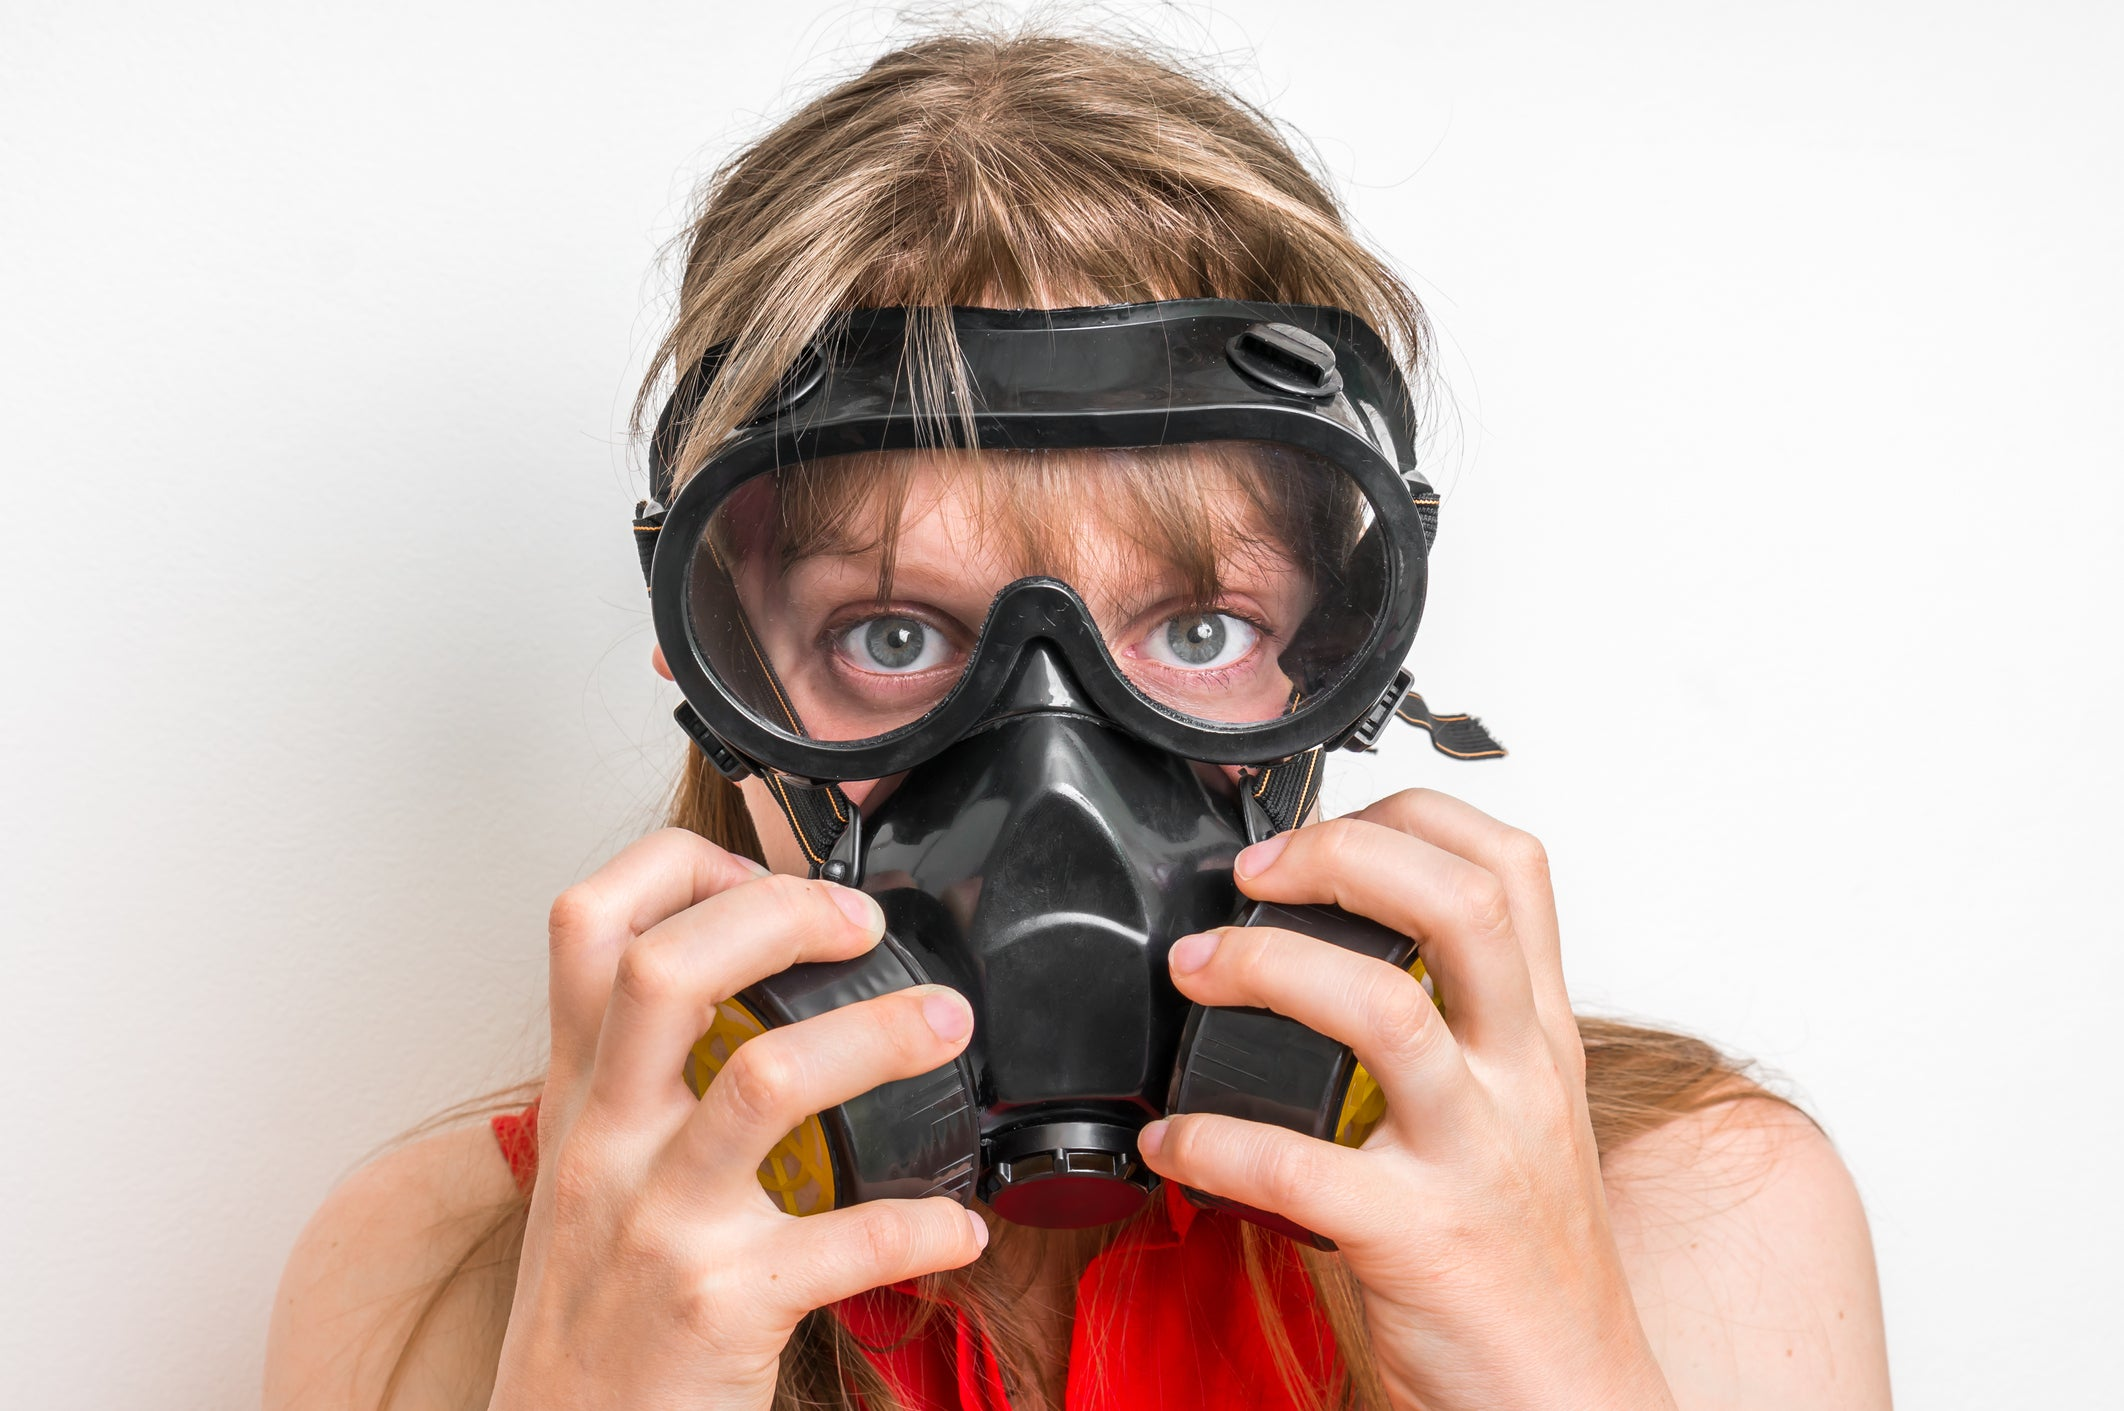 12 signs your boss or workplace is toxic